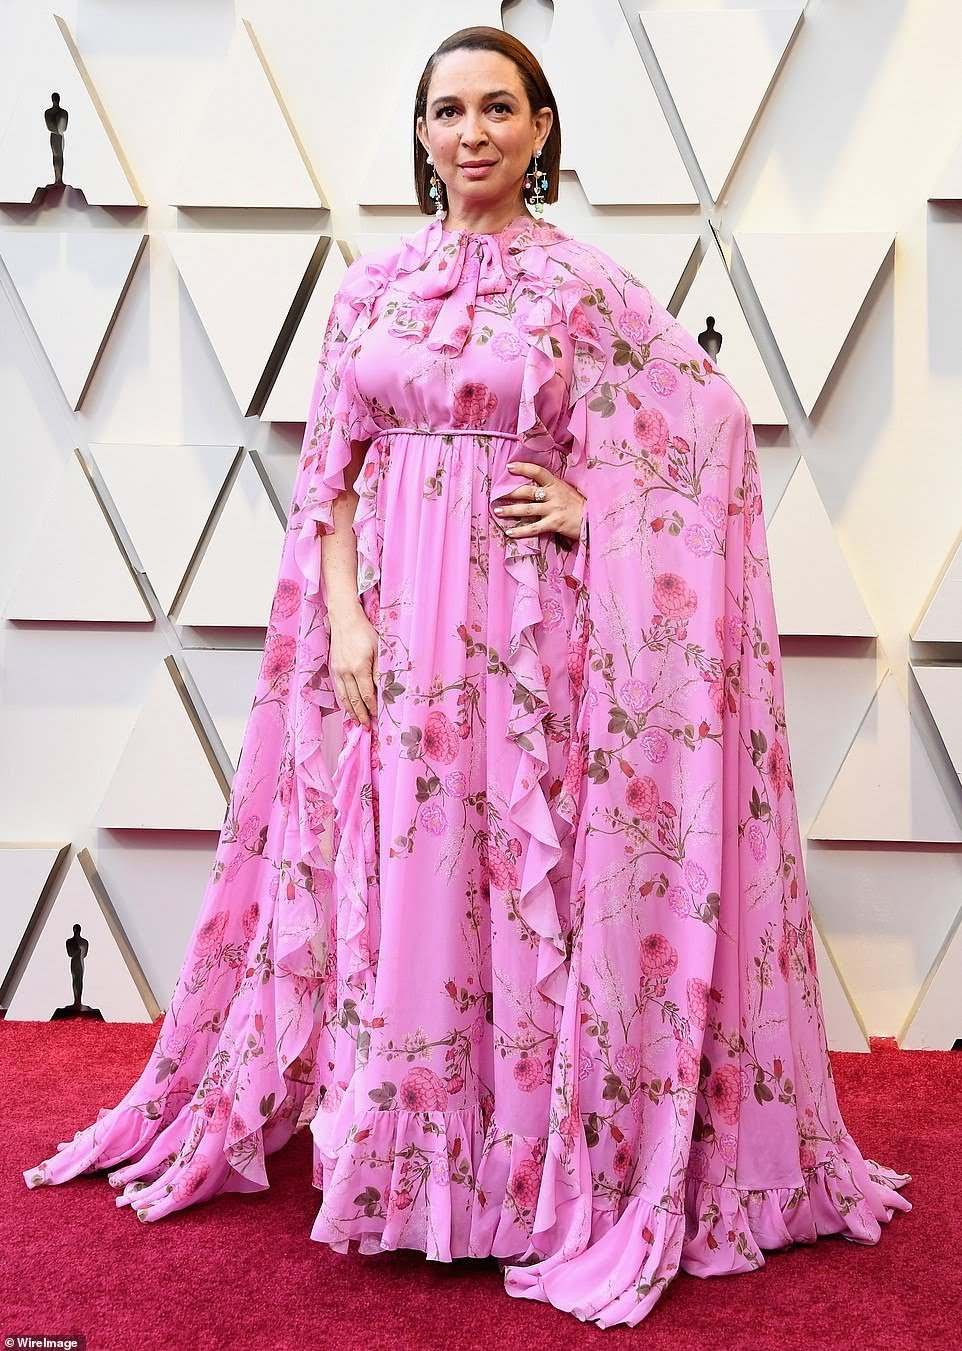 Maya Rudolph at 2019 oscars